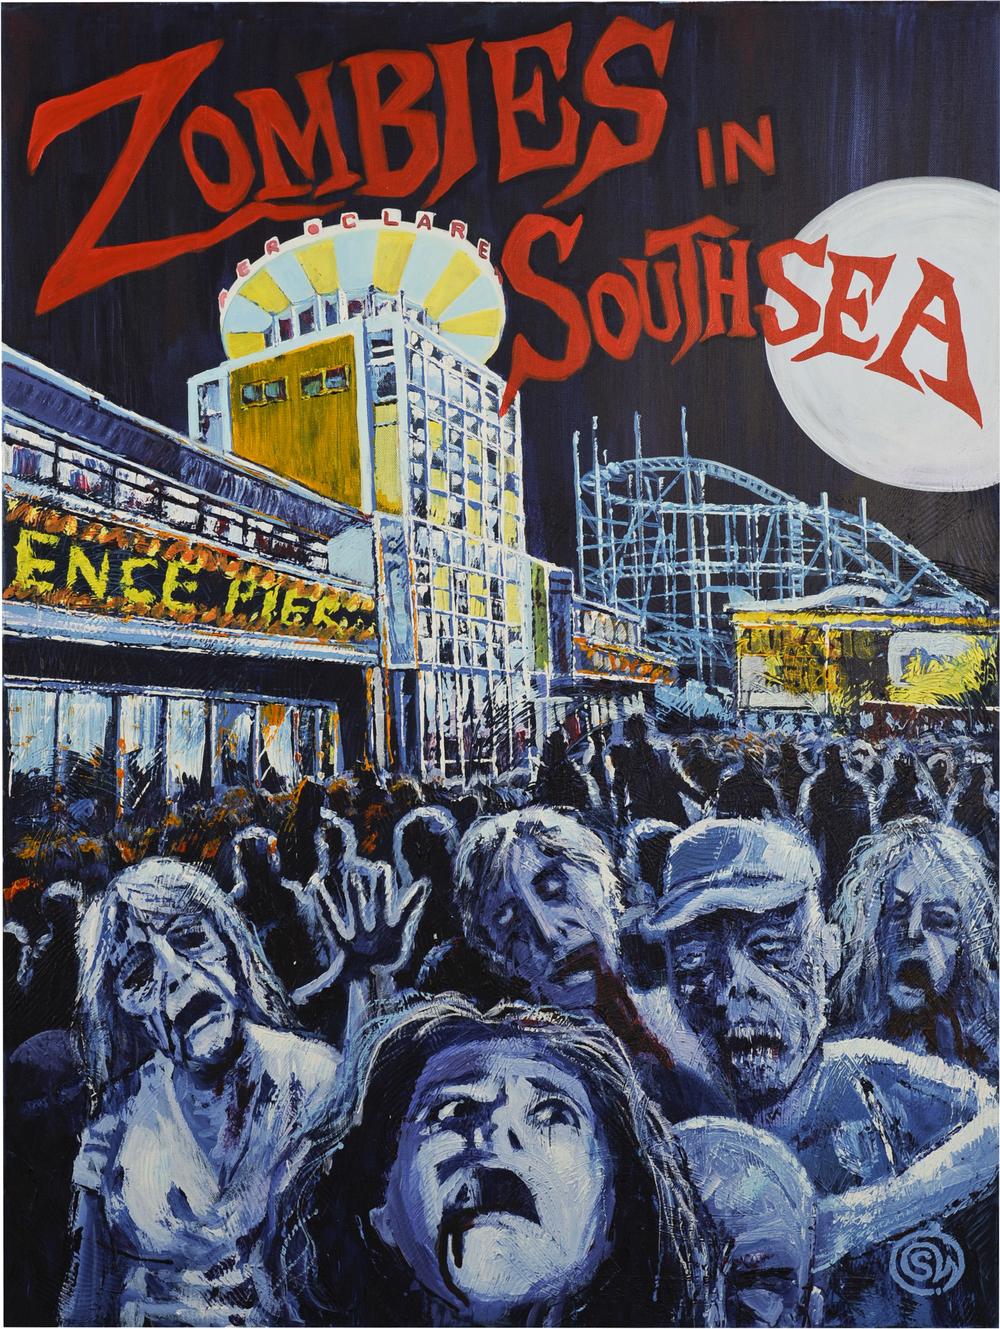 Zombies in Southsea